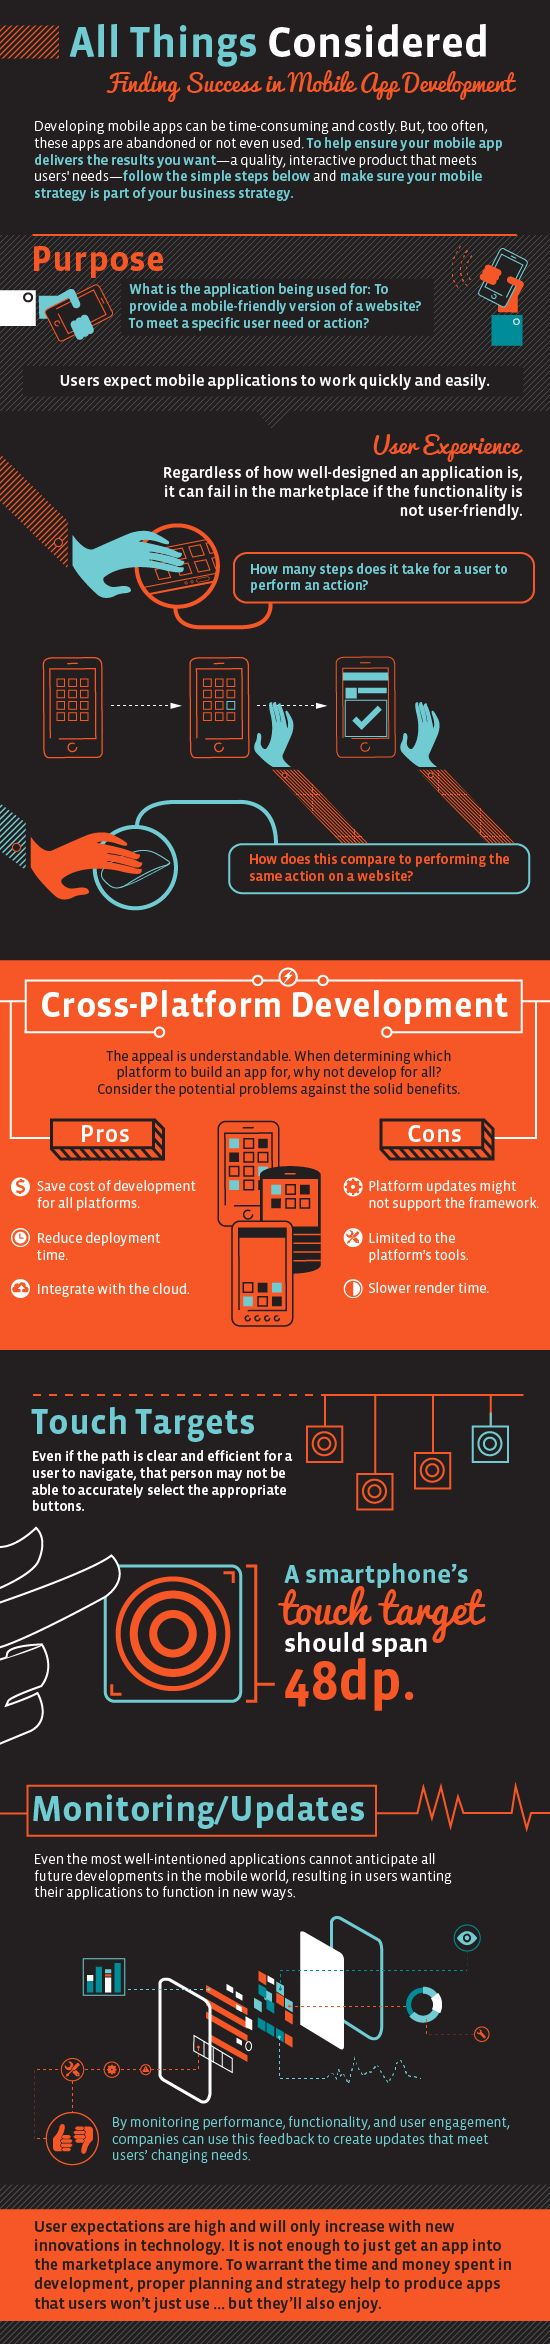 How to build a successful mobile application. Promatics Technologies provides best mobile application development services at affordable cost.